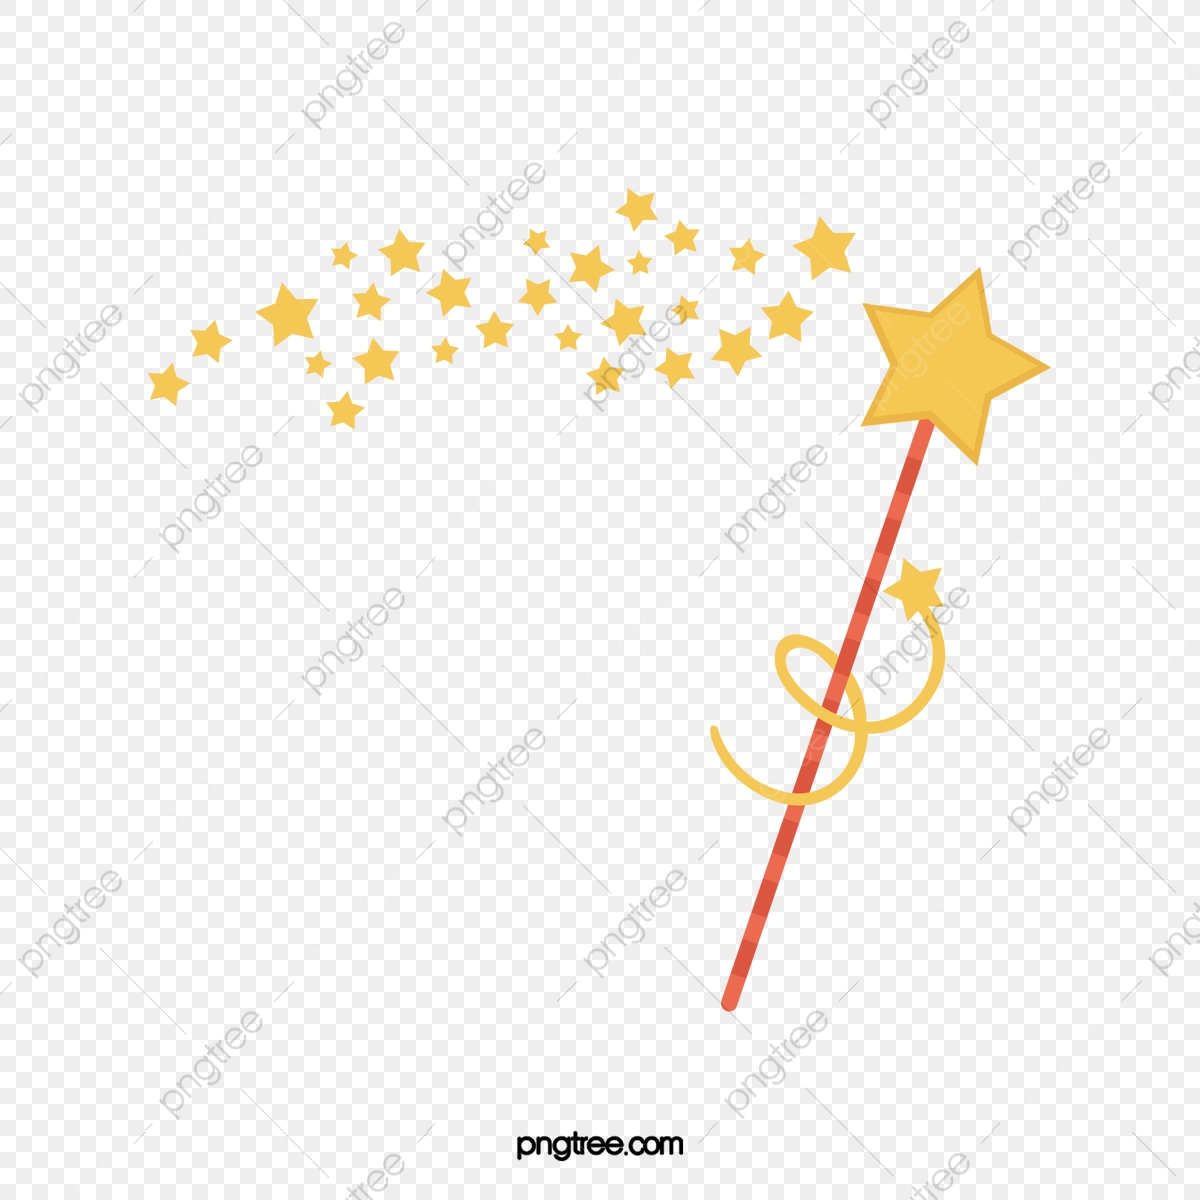 Items Magic Wand, Magic Clipart, Star, Fluctuate PNG.